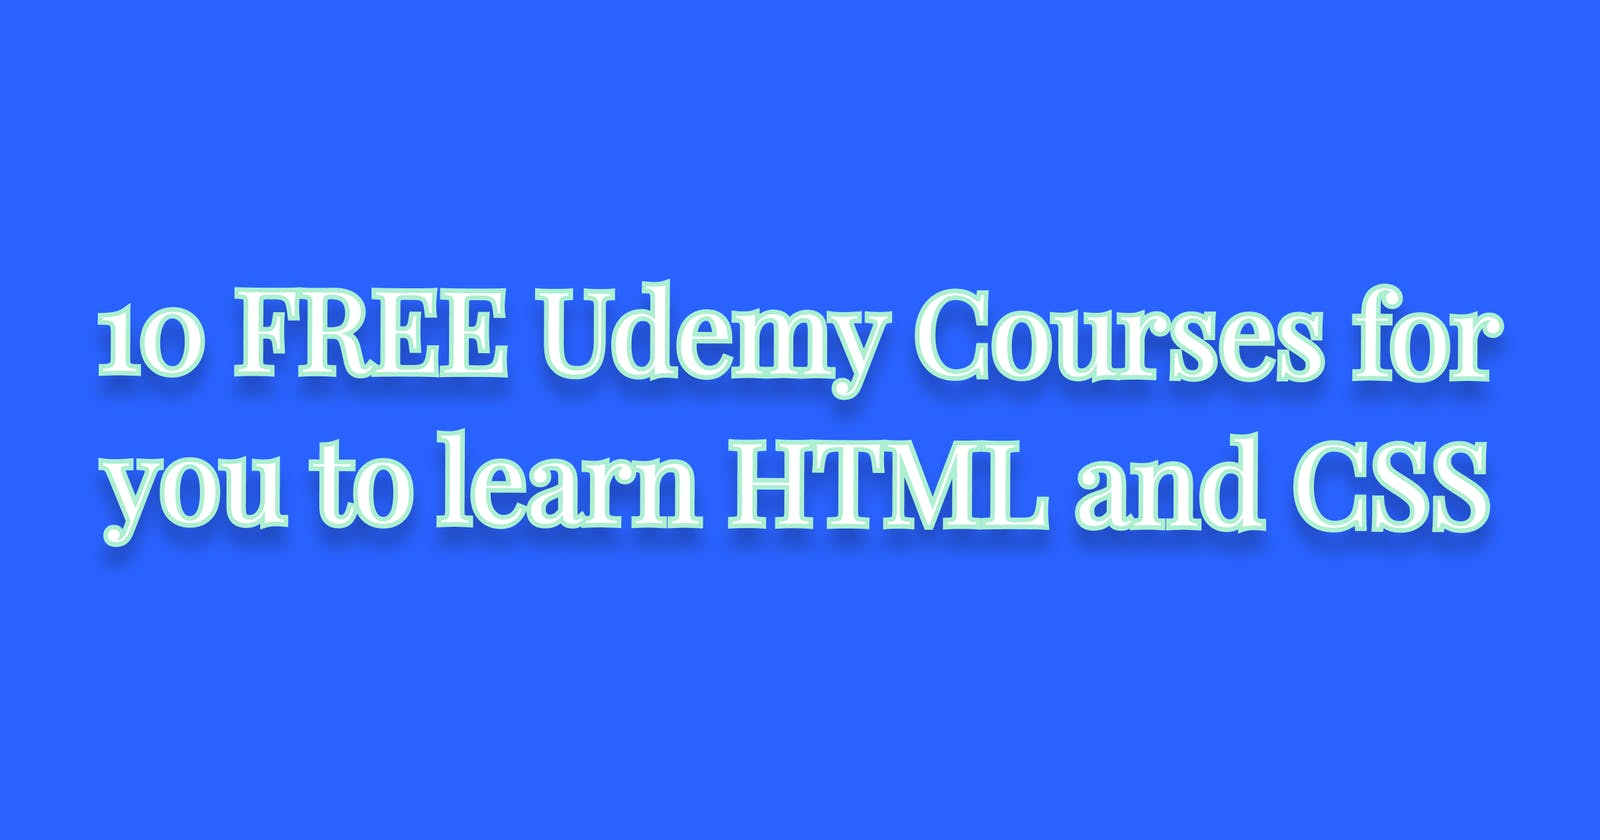 10 FREE Udemy courses for you to learn HTML and CSS